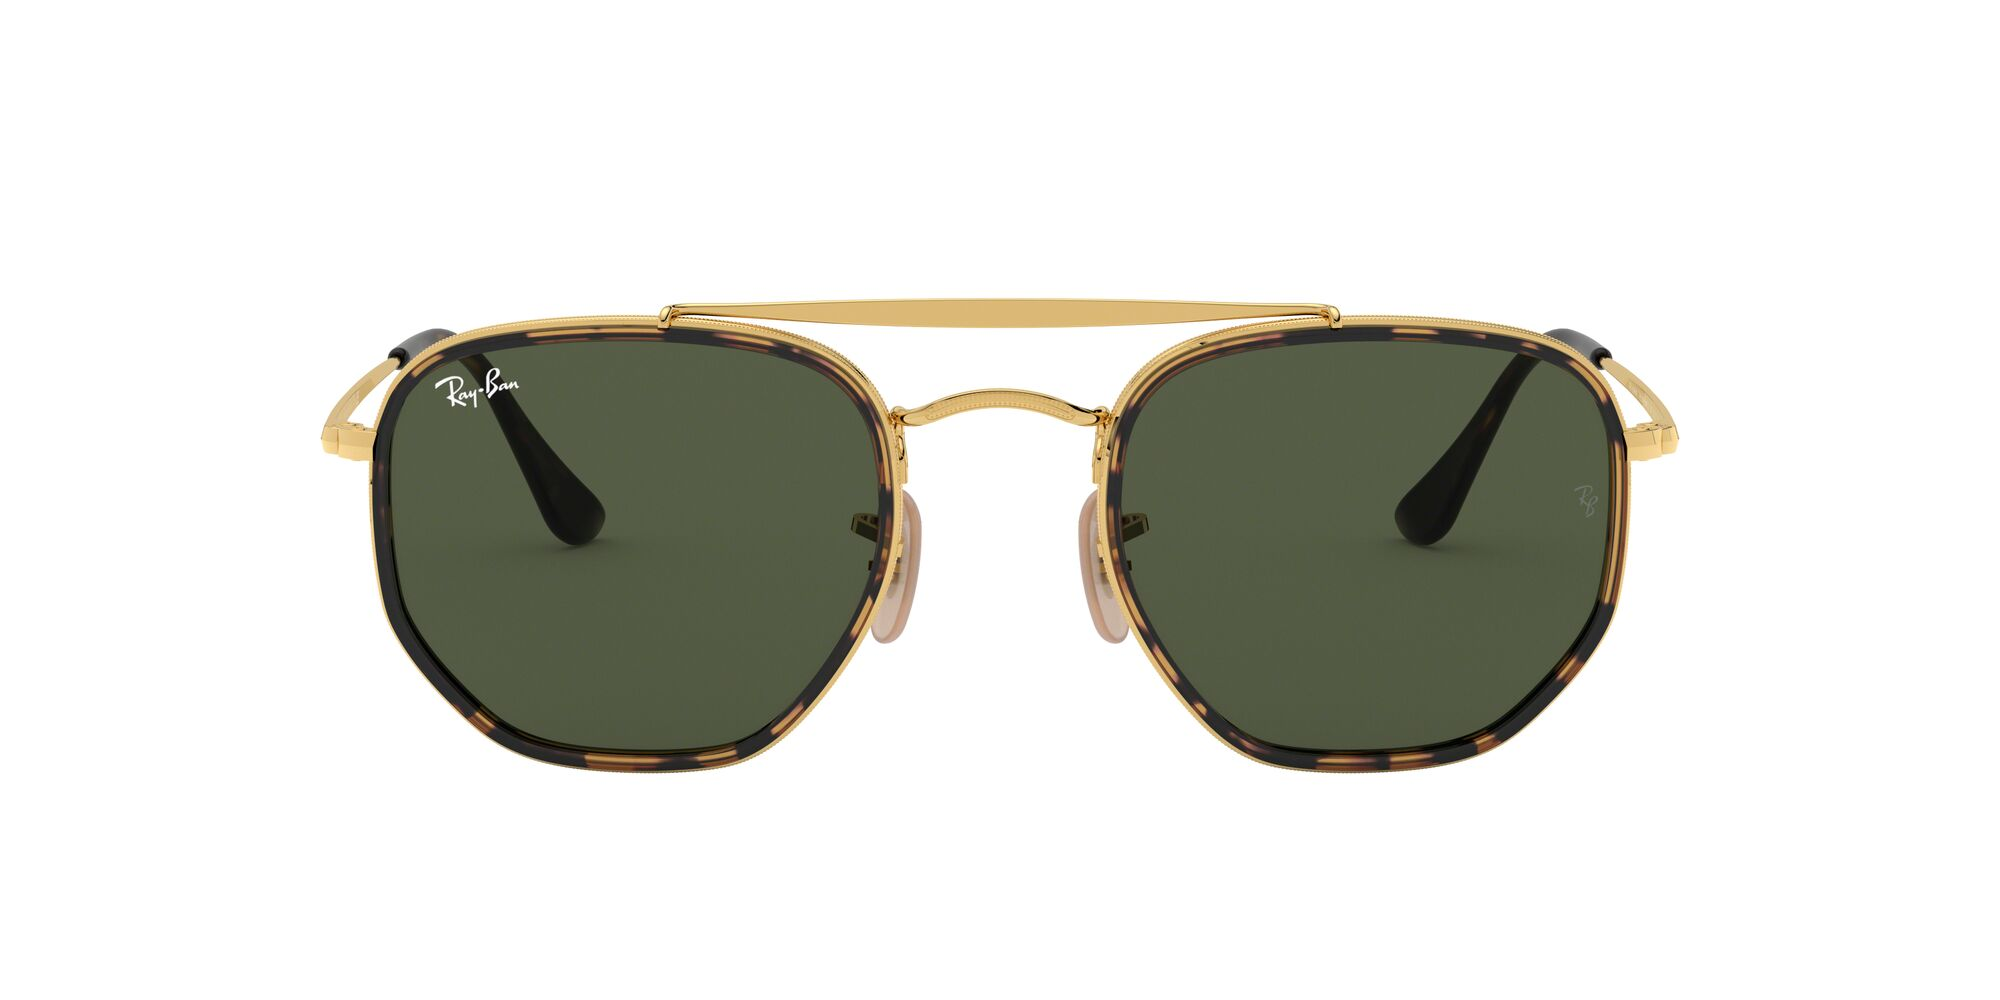 Front Ray-Ban Ray-Ban 0RB3648M 001 52/23 Gold, Bruin/Groen